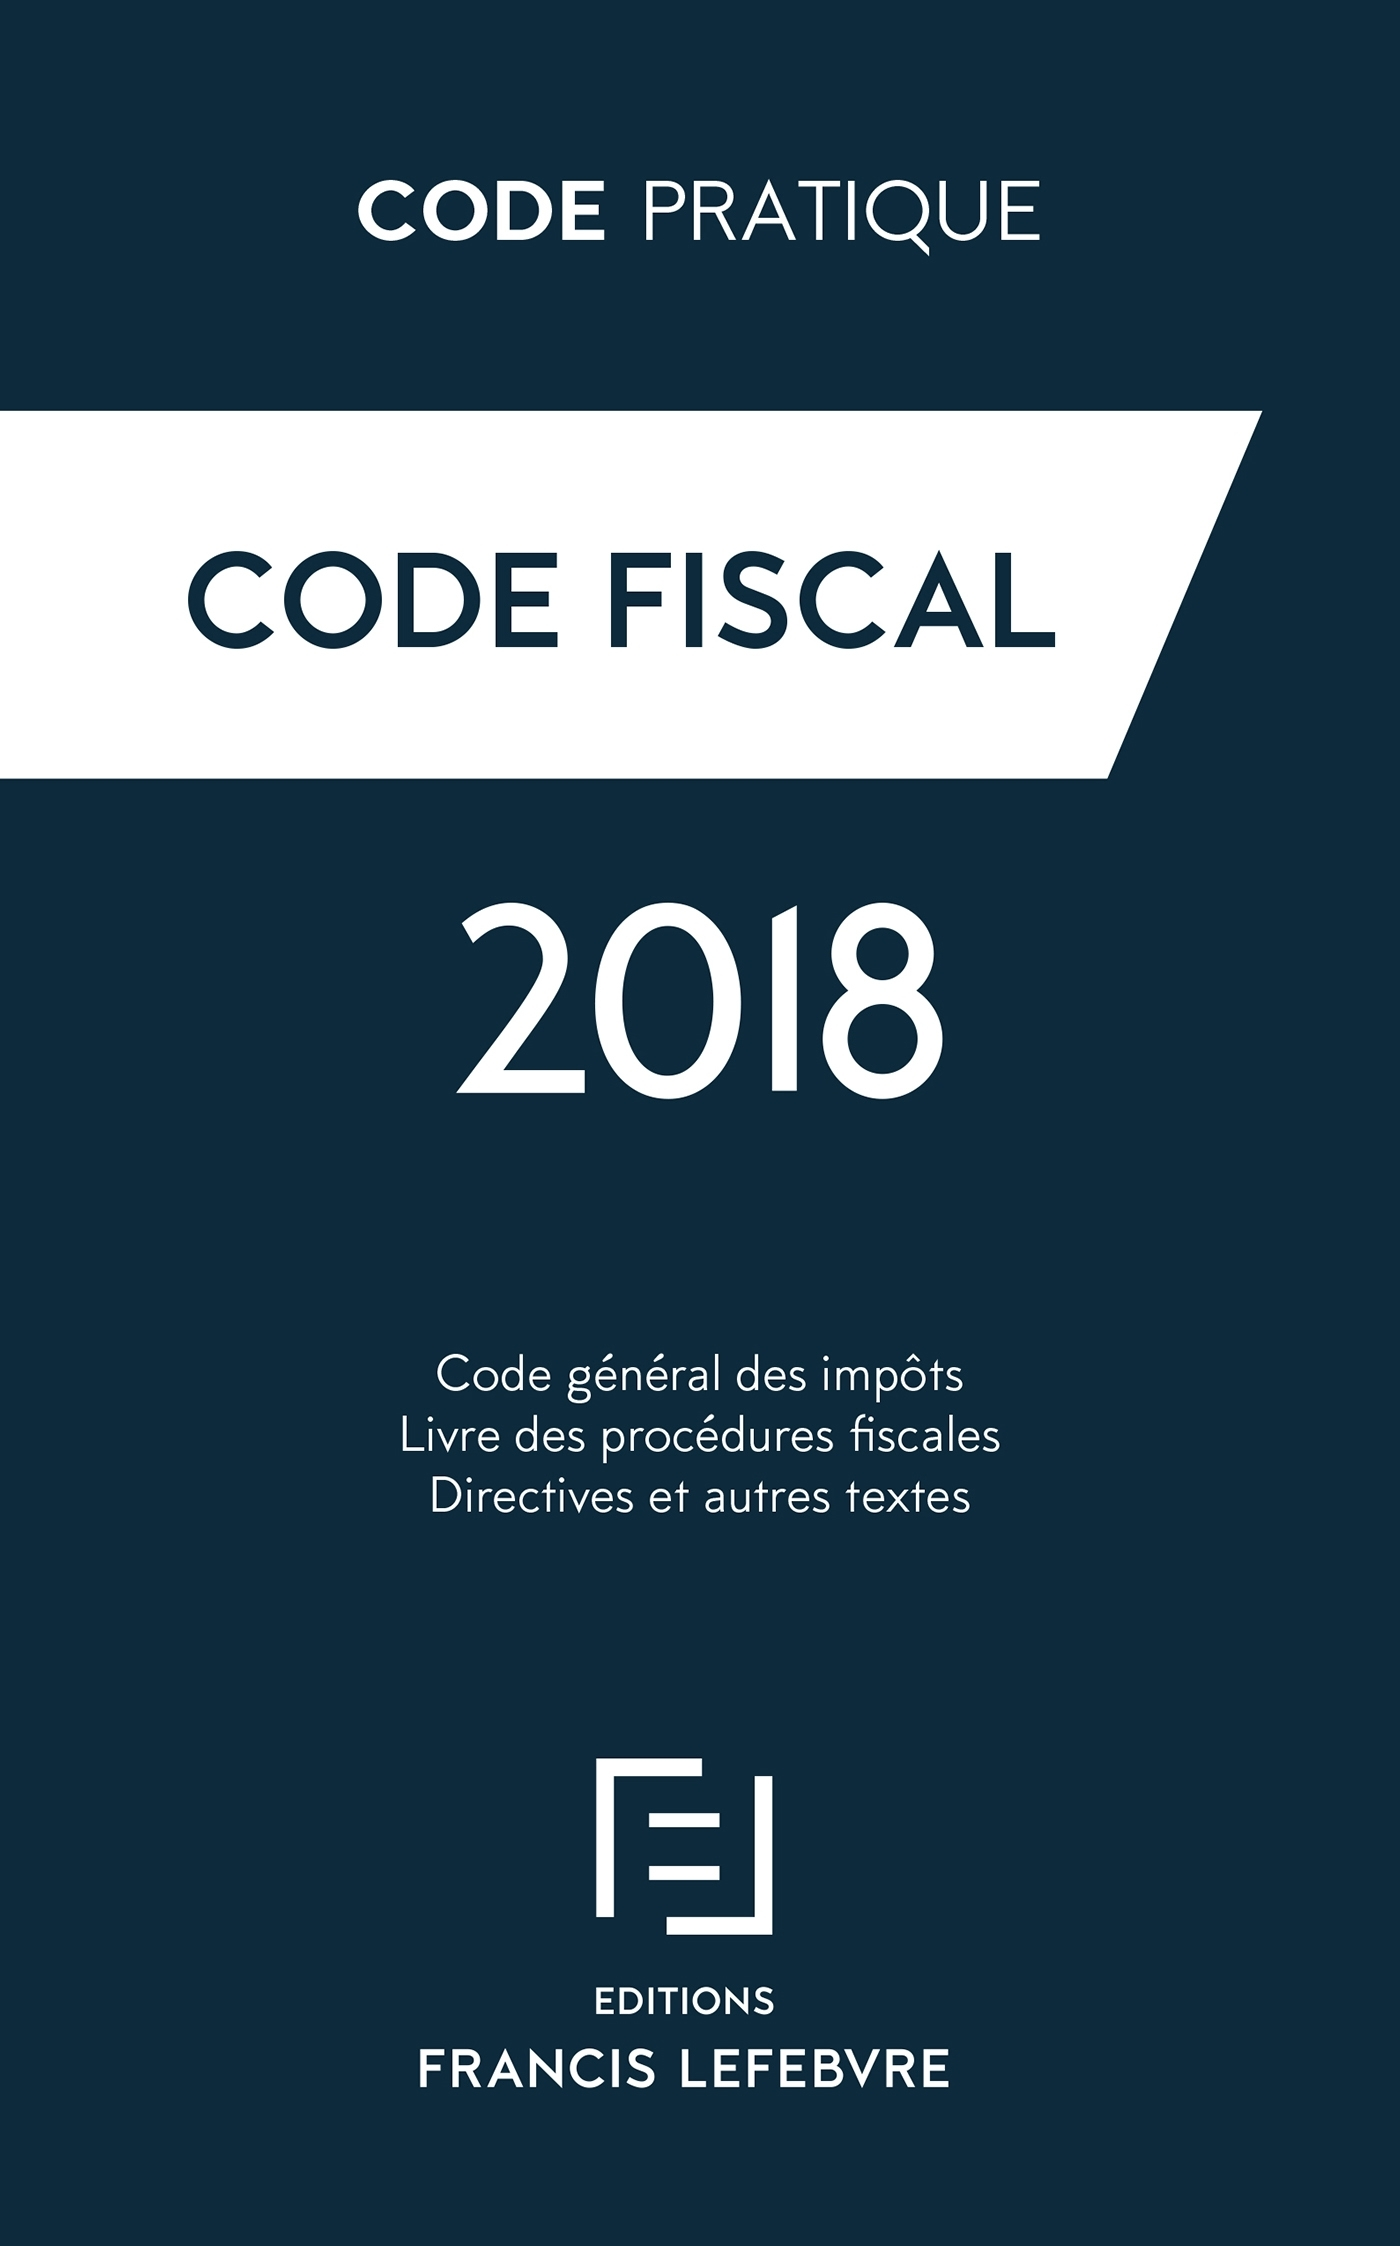 CODE FISCAL 18